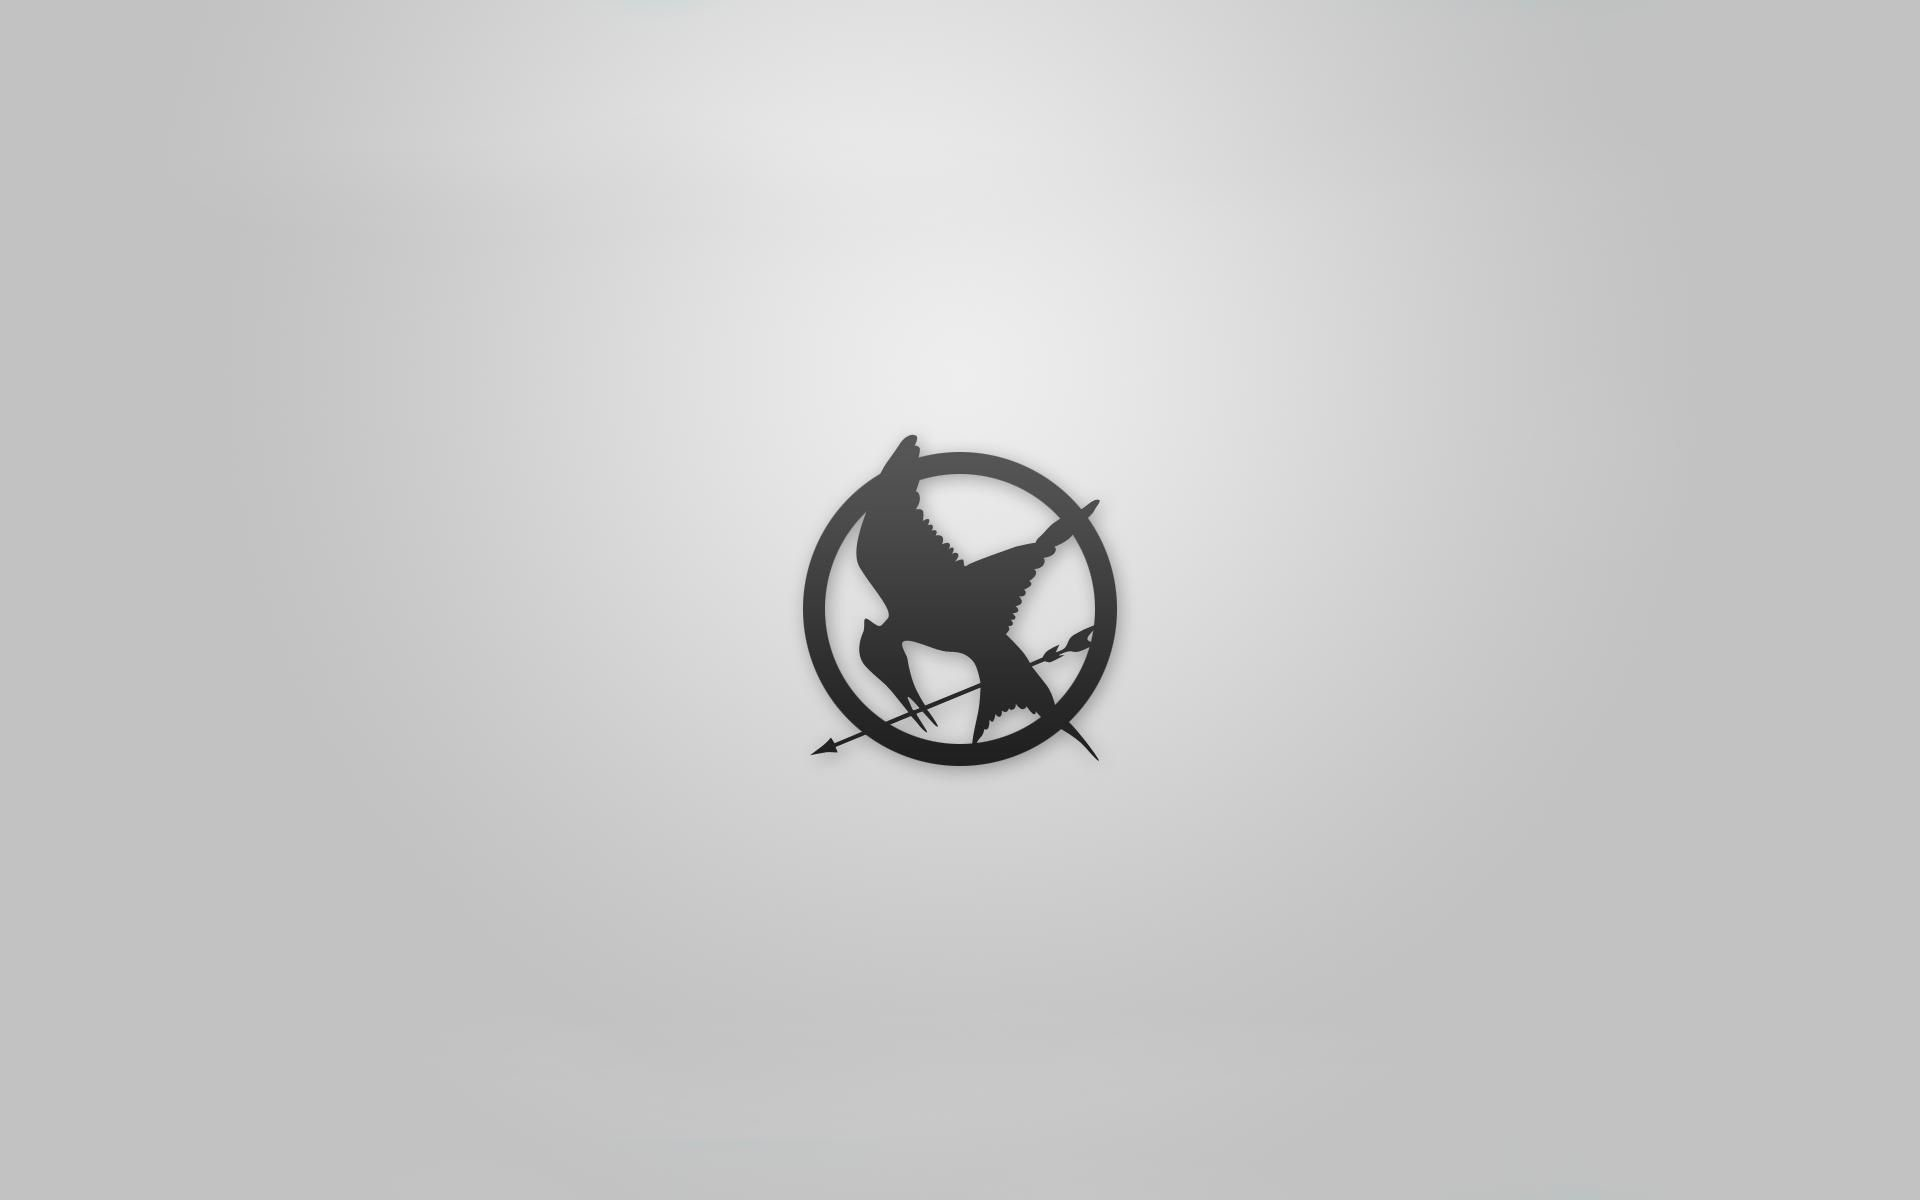 1920x1200 The Hunger Games Wallpapers - Wallpaper Cave